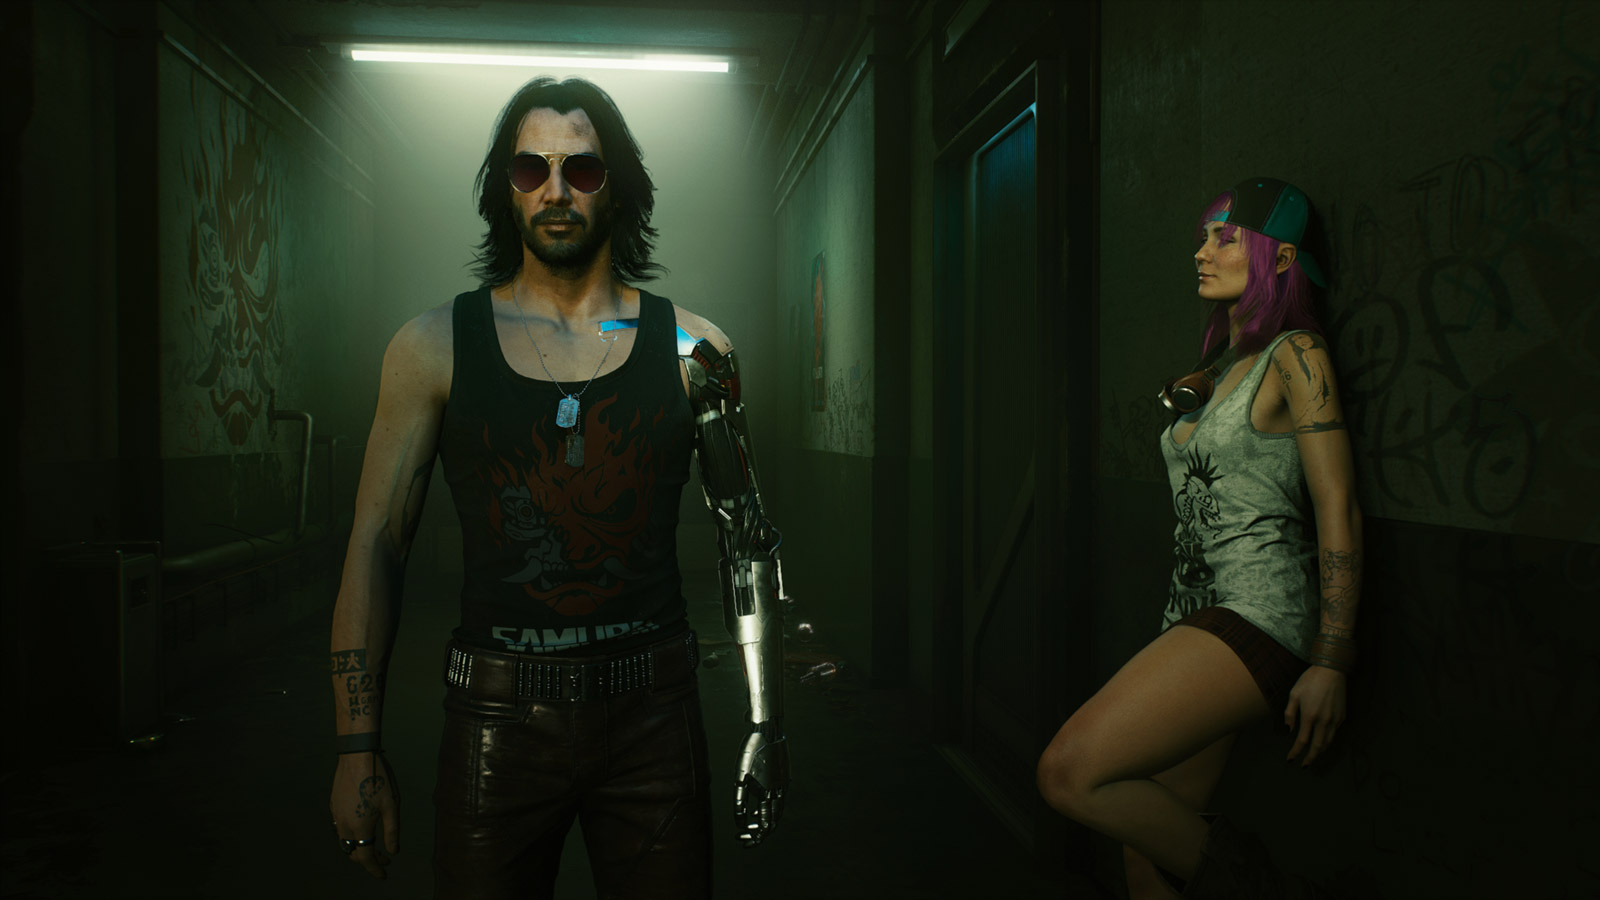 Free Cyberpunk 2077 Wallpaper in 1600x900